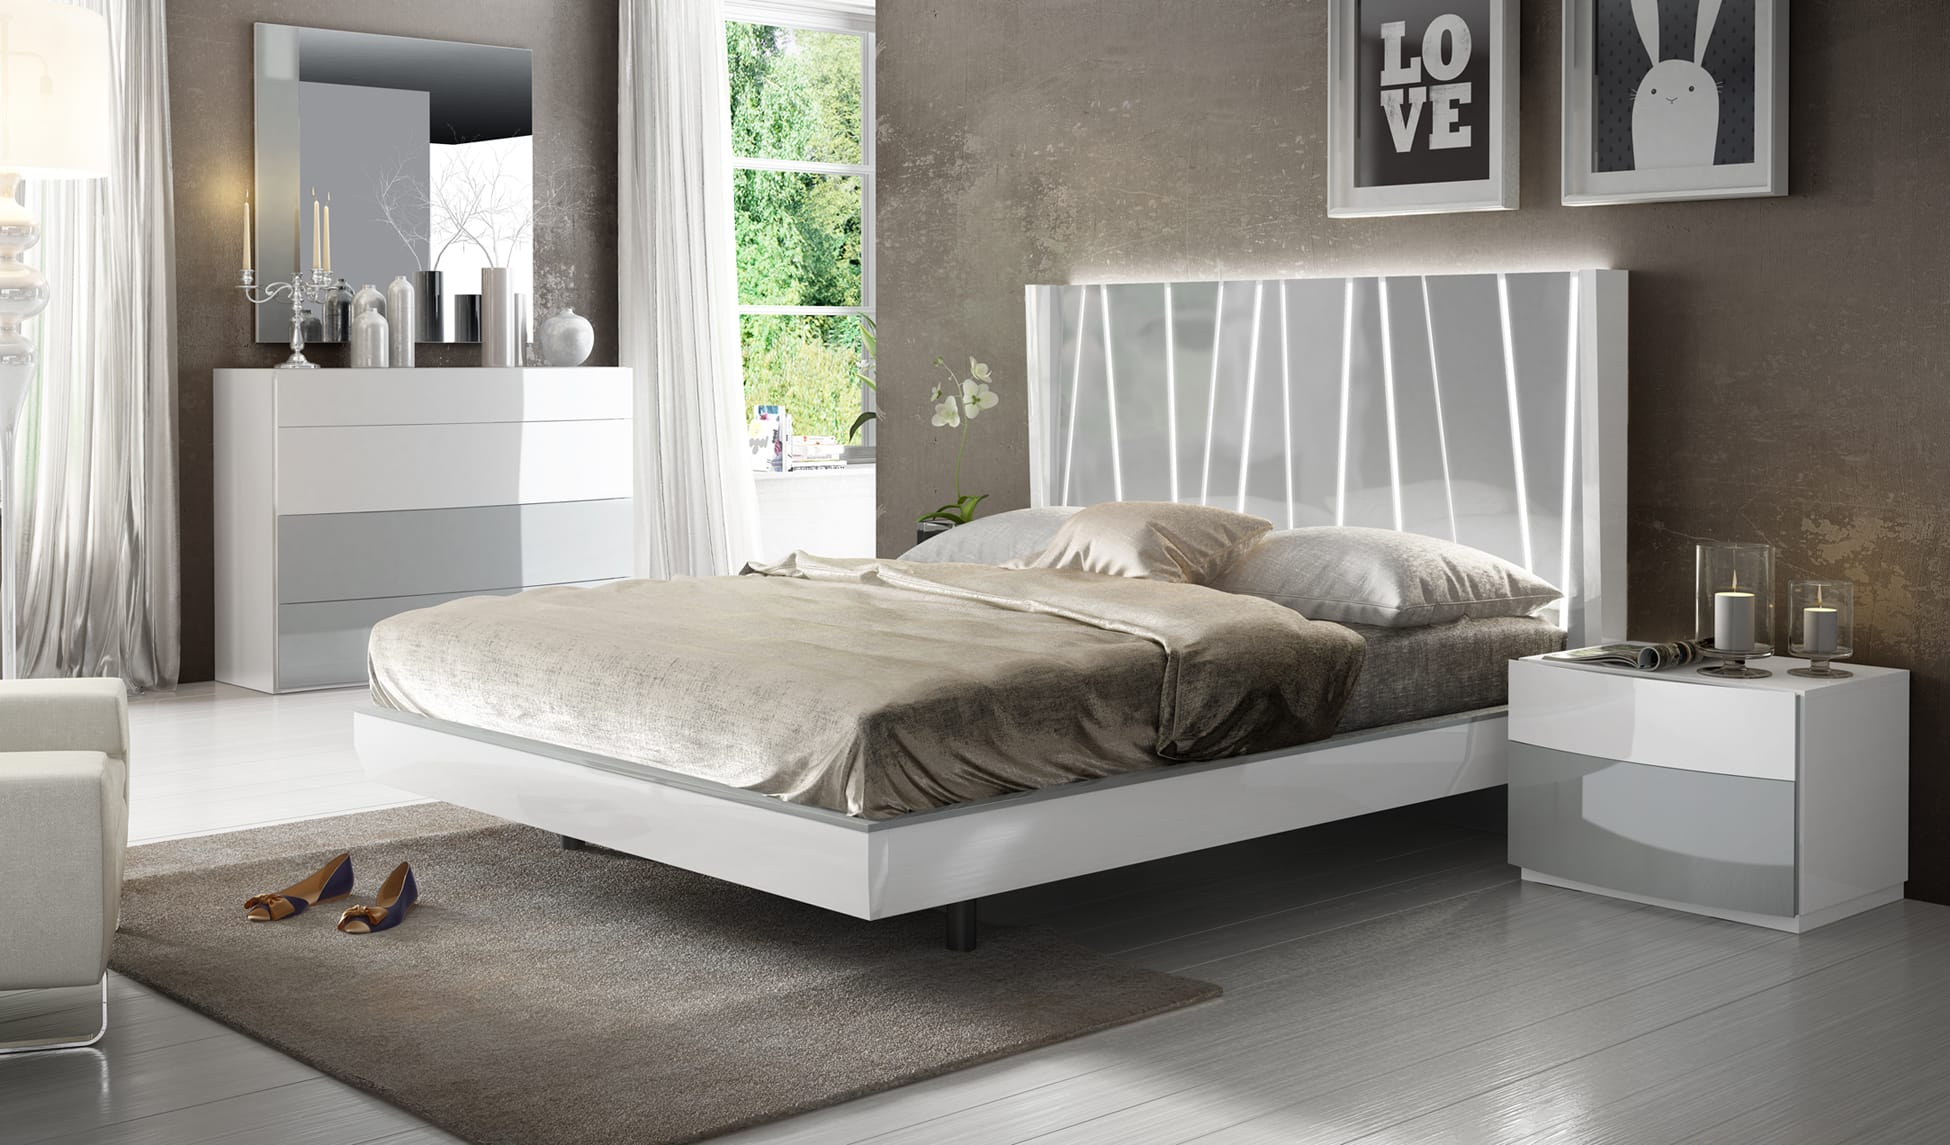 Ronda Dali White Gray Bedroom Set By Esf